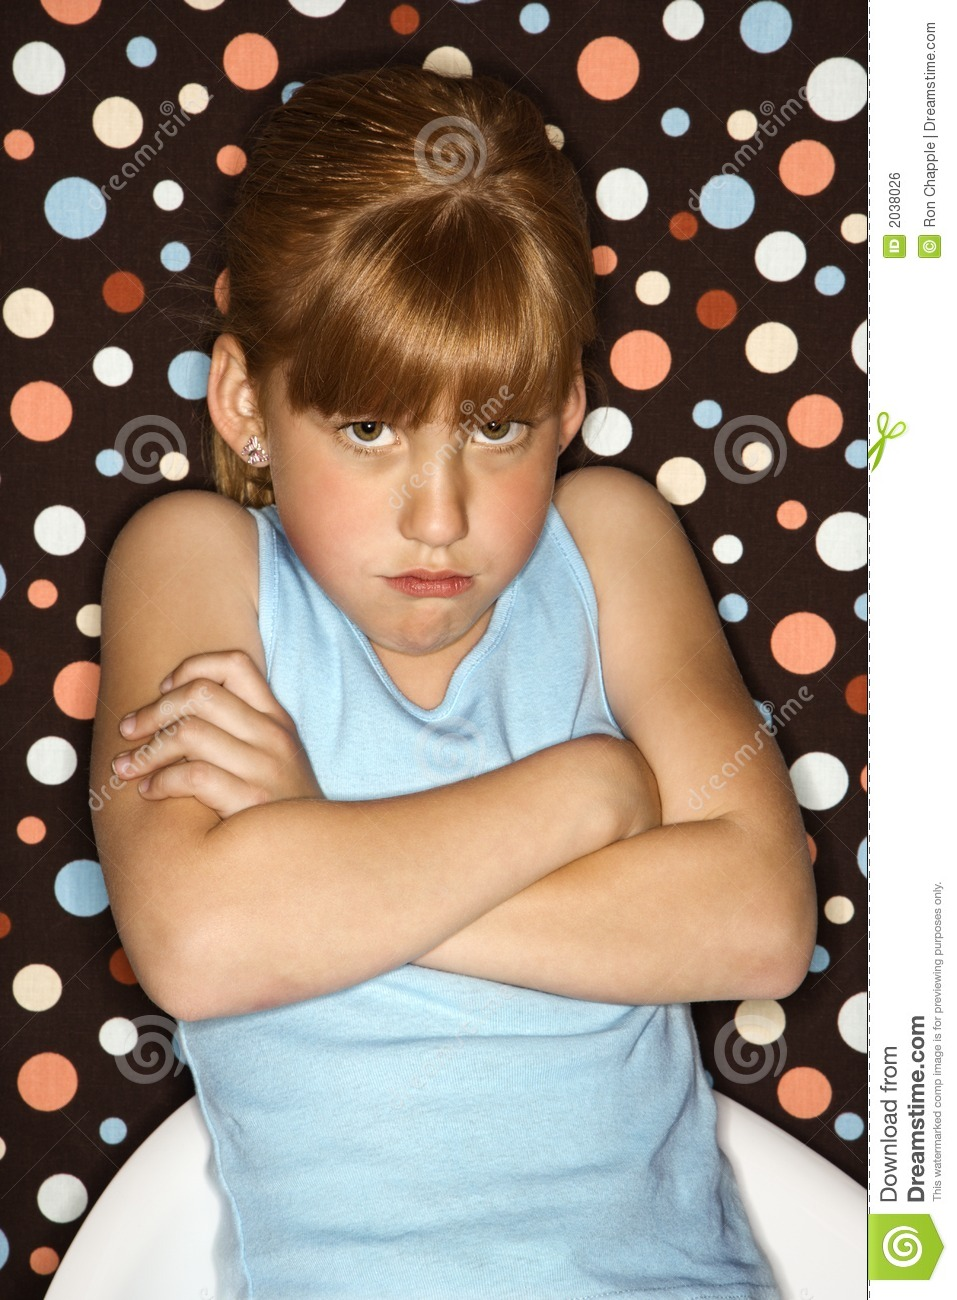 Girl Pouting With Arms Crossed. Royalty Free Stock Image ...